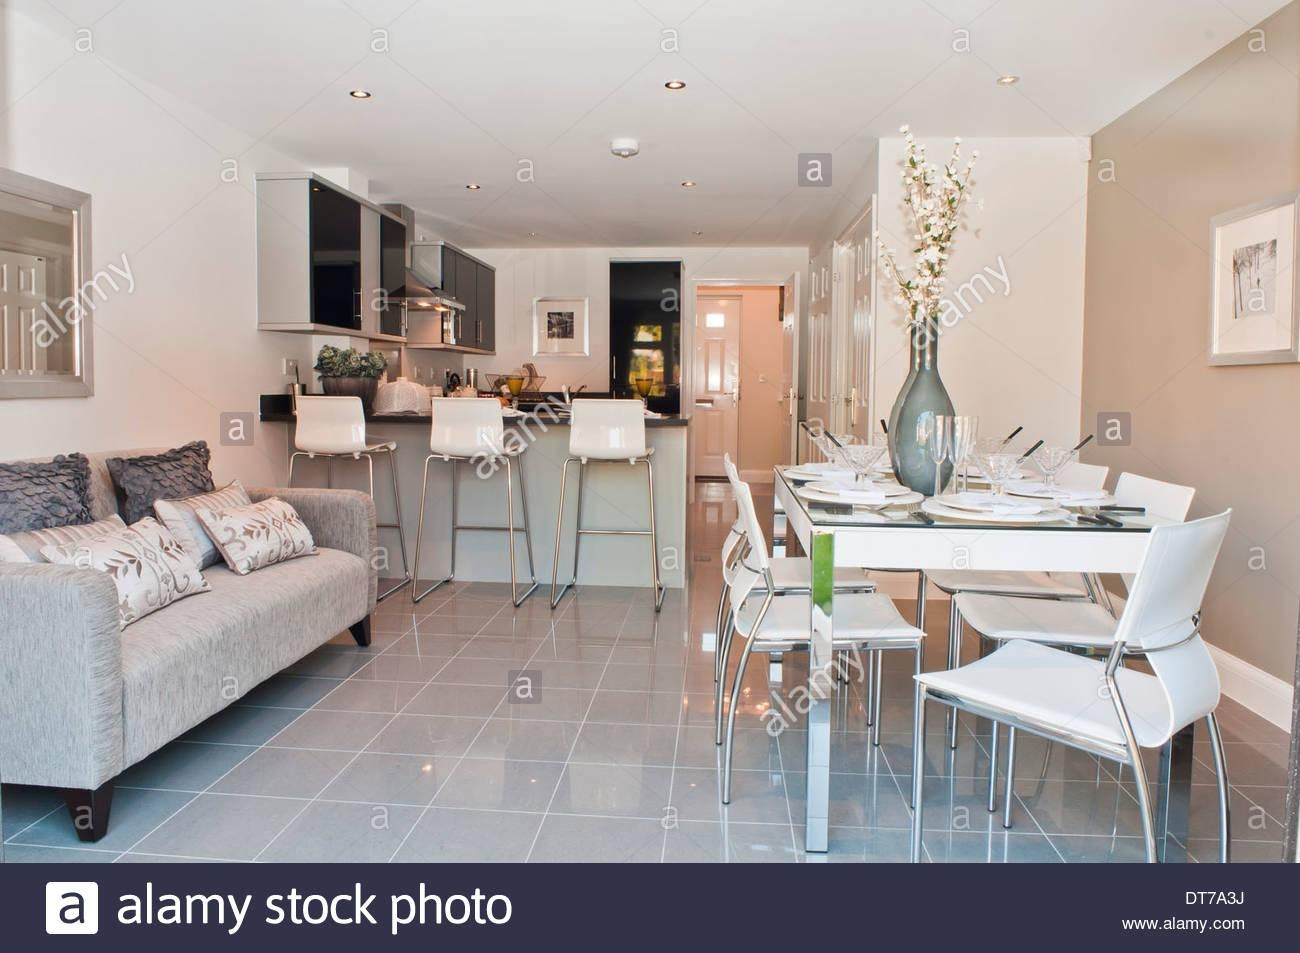 Show Home Kitchen / Diner With Sofa Stock Photo, Royalty Free With Sofas For Kitchen Diner (View 2 of 21)